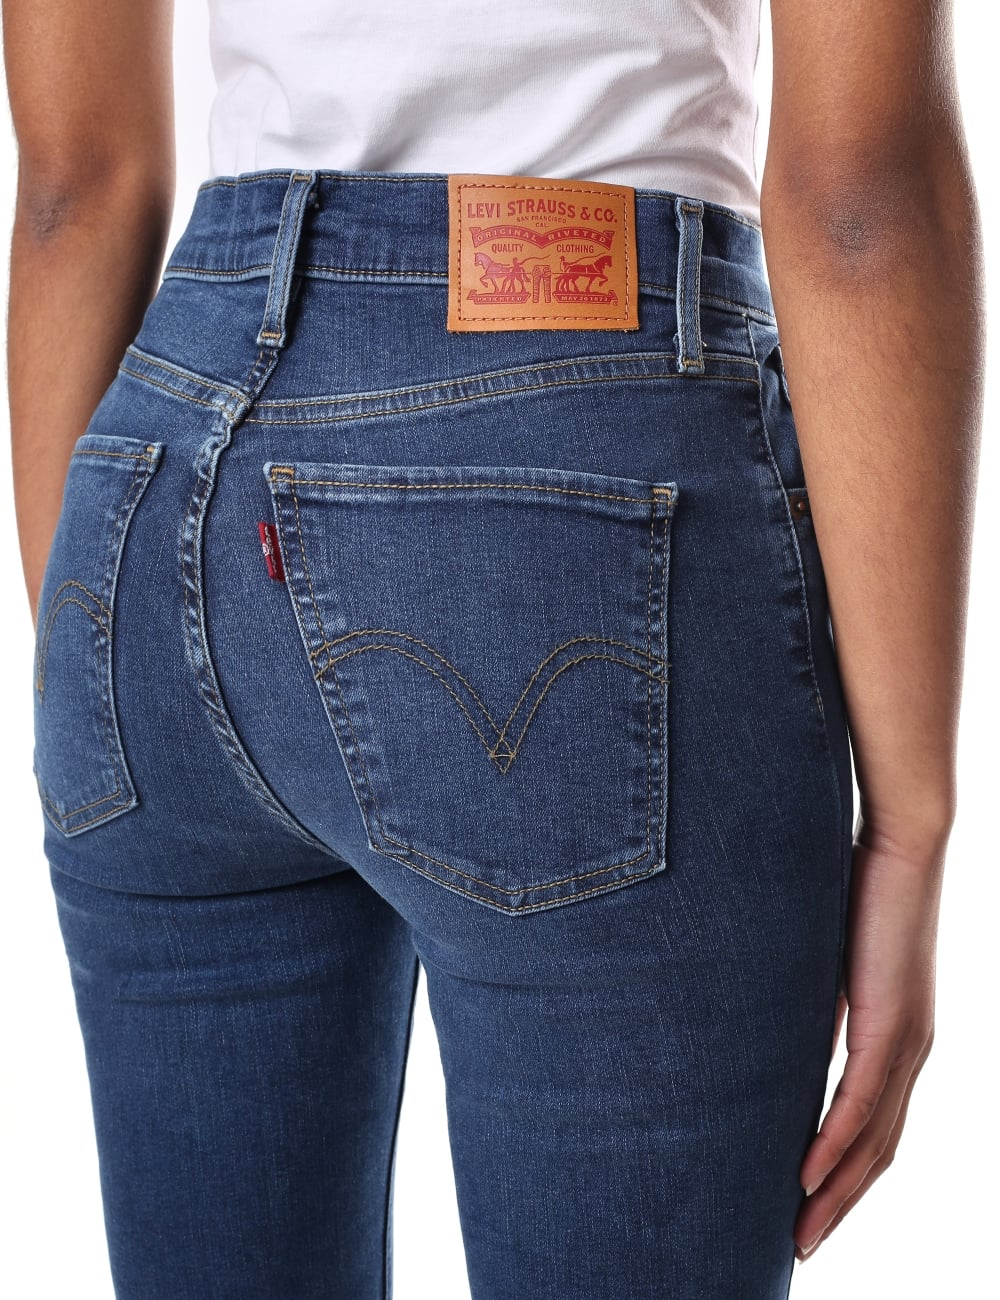 a02d59cdae5 Levi s Mile High Women s Hypersculpt Super Skinny Jean